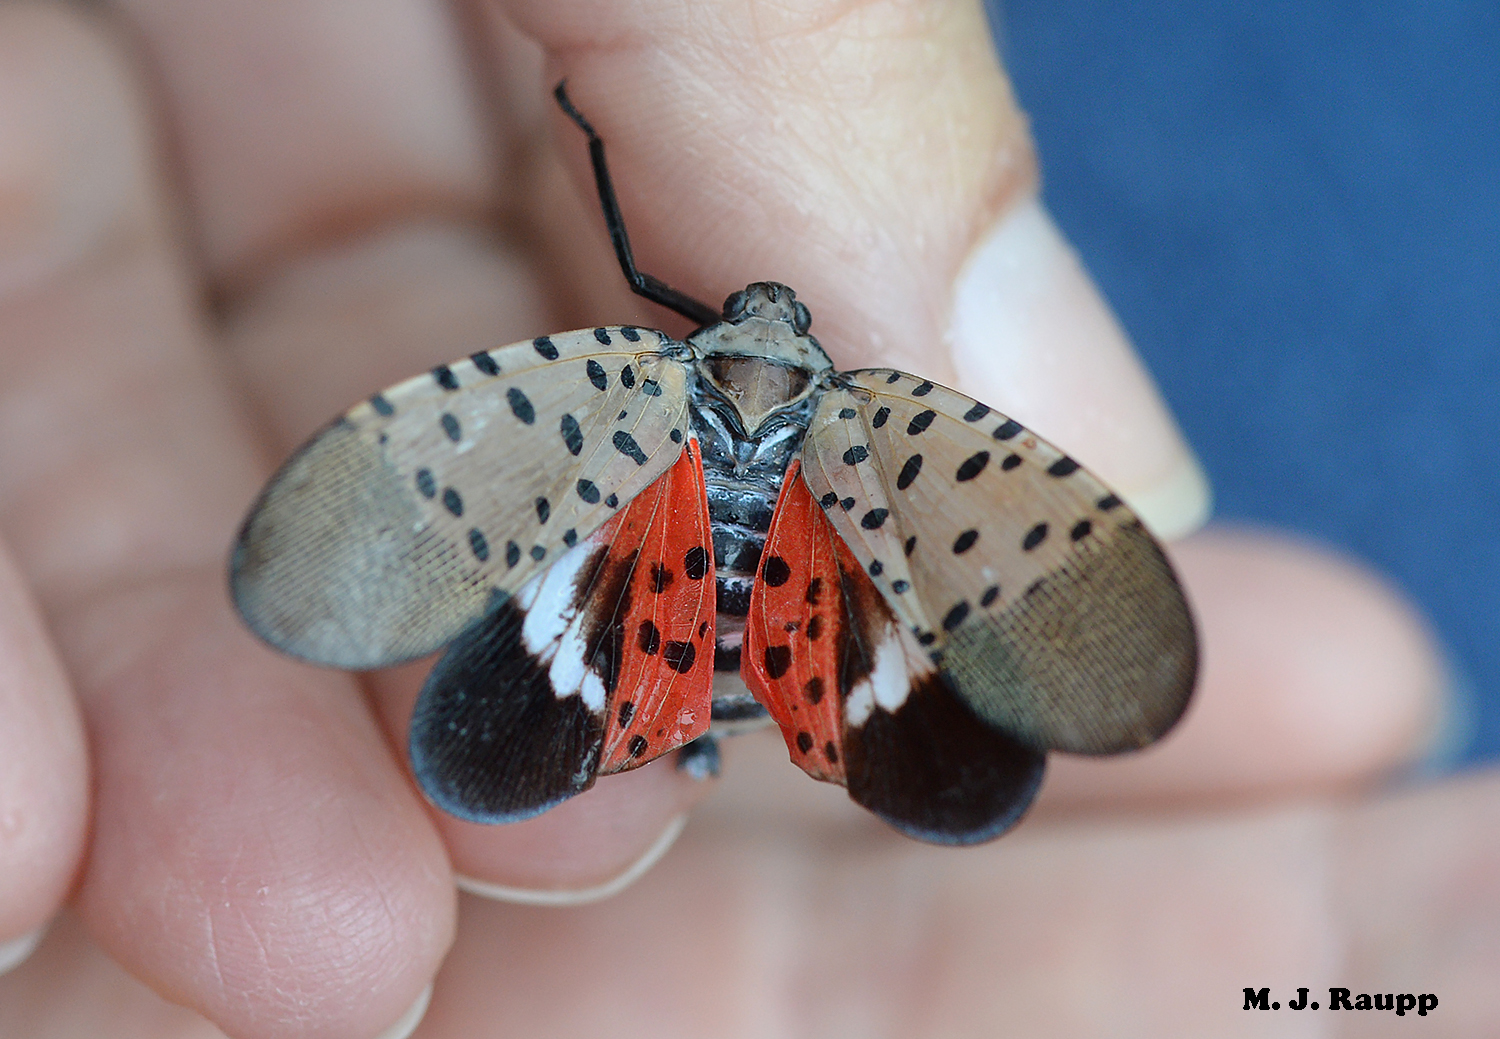 Spectacularly beautiful but nonetheless harmful, spotted lanternflies provide yet another challenge in the never ending battle with invasive species.